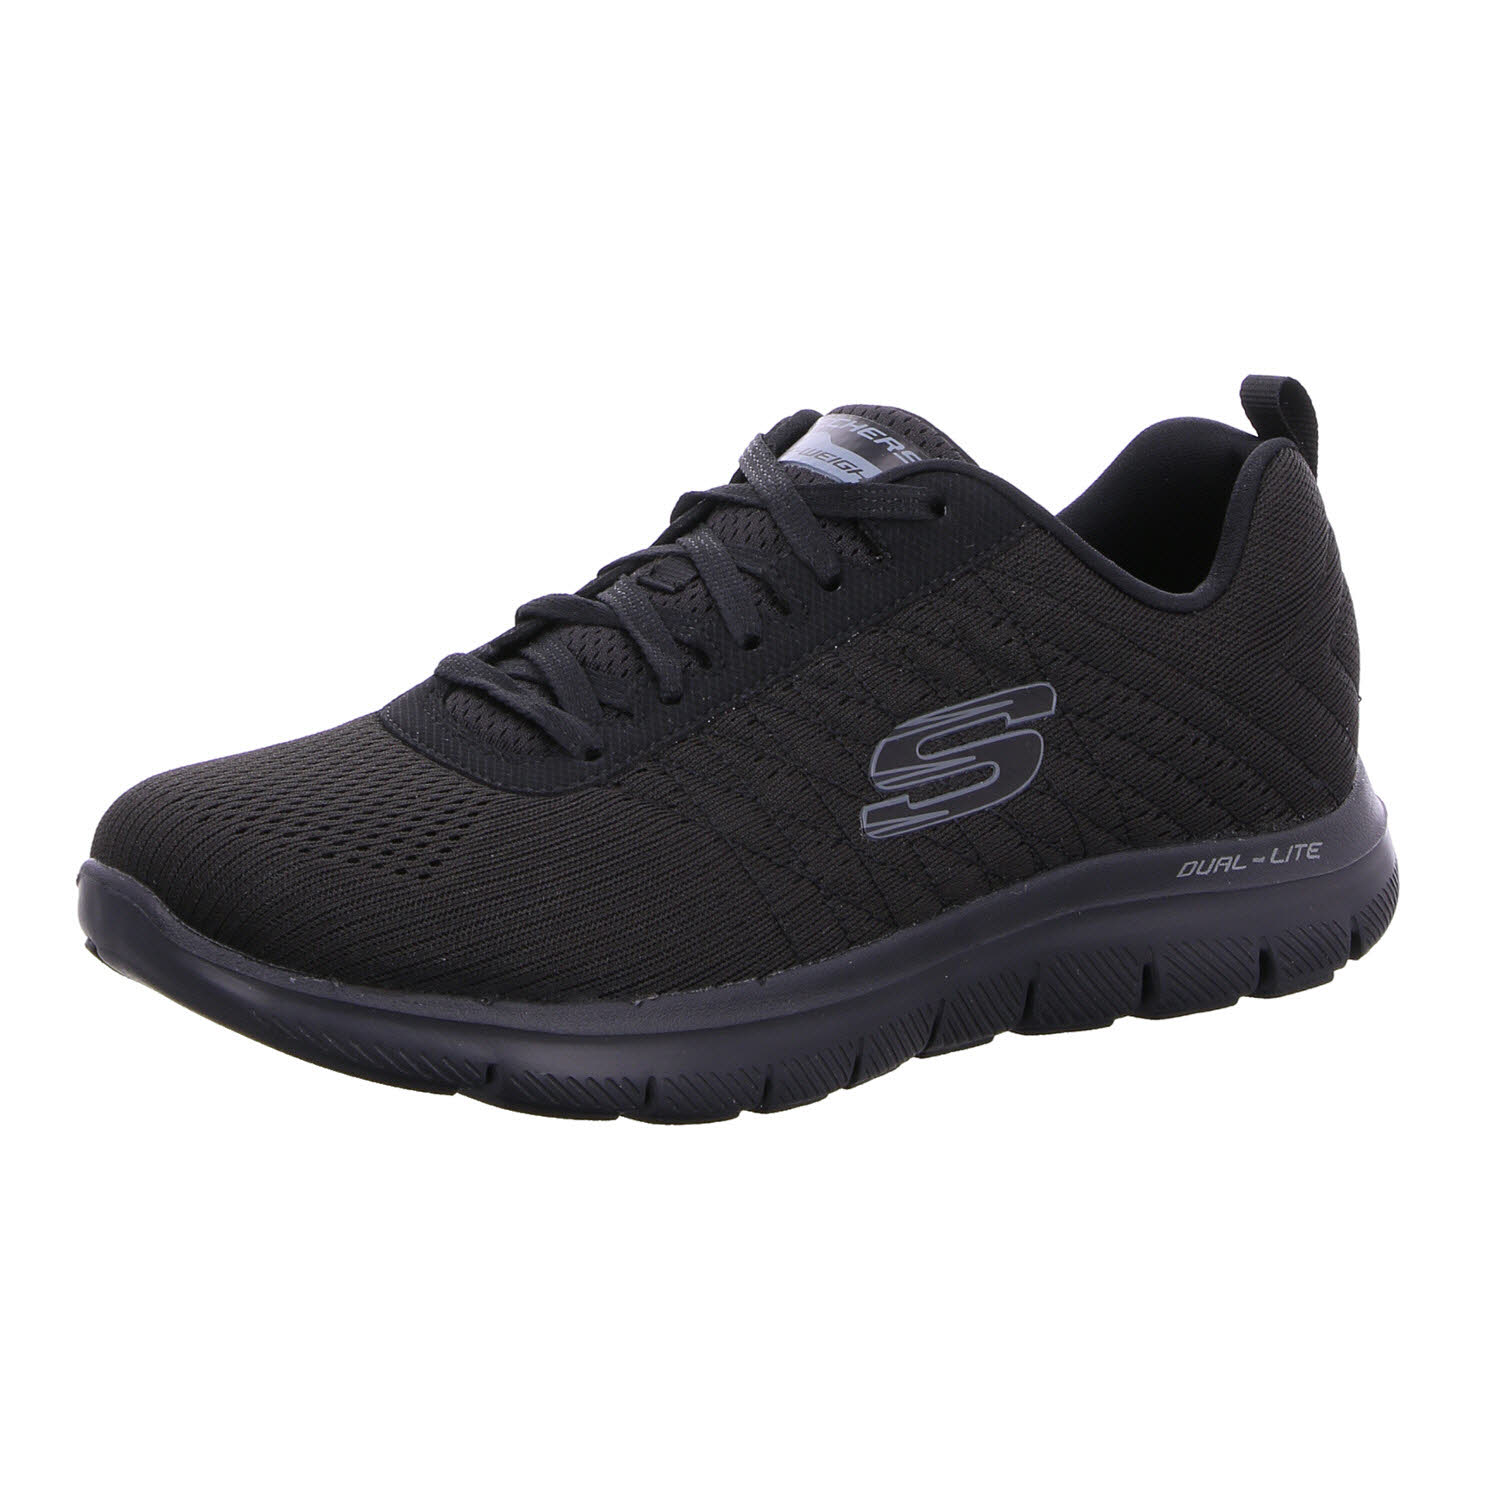 Skechers FLEX FLEX Skechers APPEAL 2.0 - BREAK FREE bebf2f